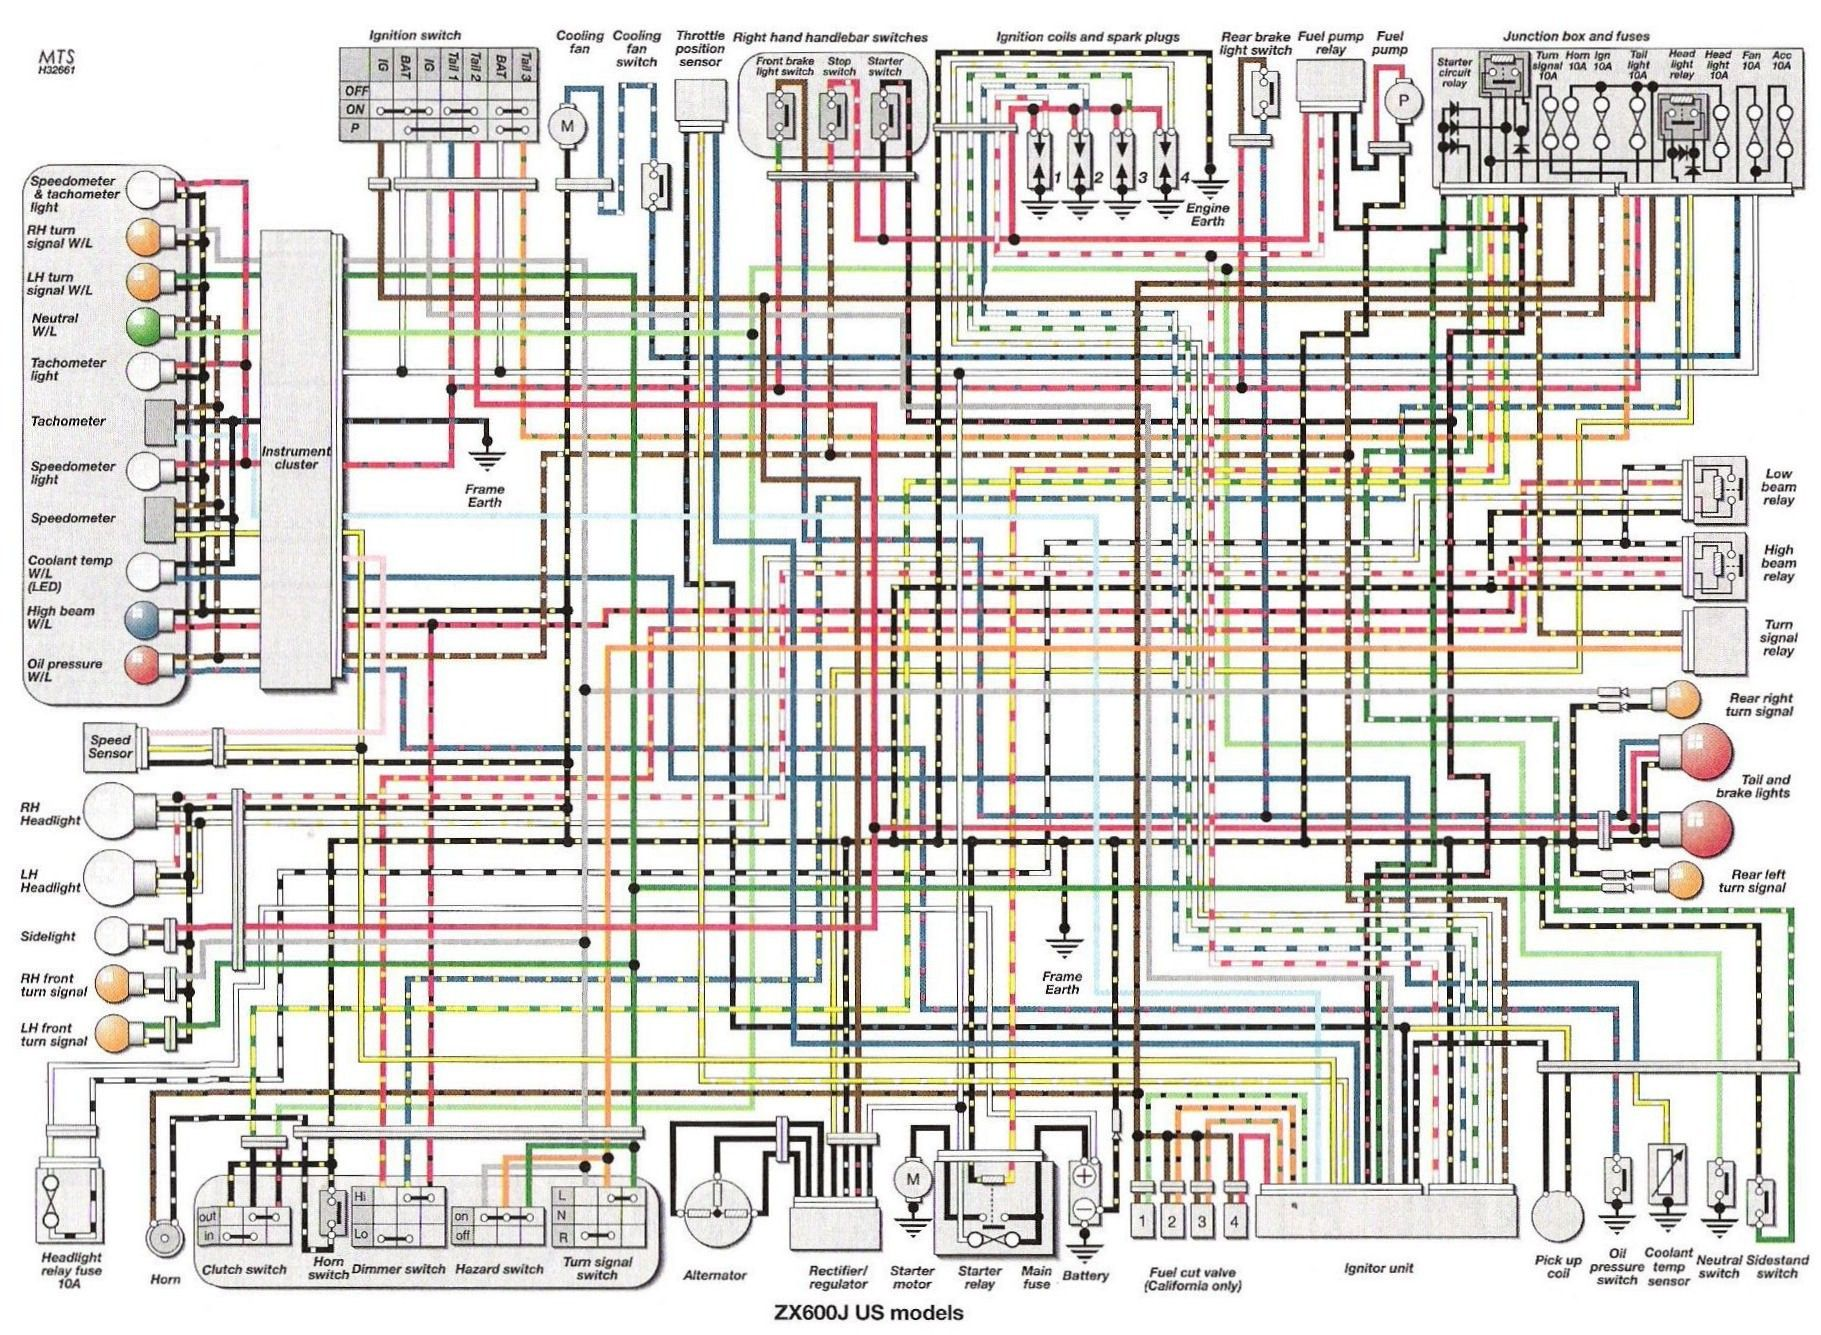 2002 Yamaha R1 Integrated Tail Light Diagram Awesome In 2020 Circuit Diagram House Wiring Electrical Diagram